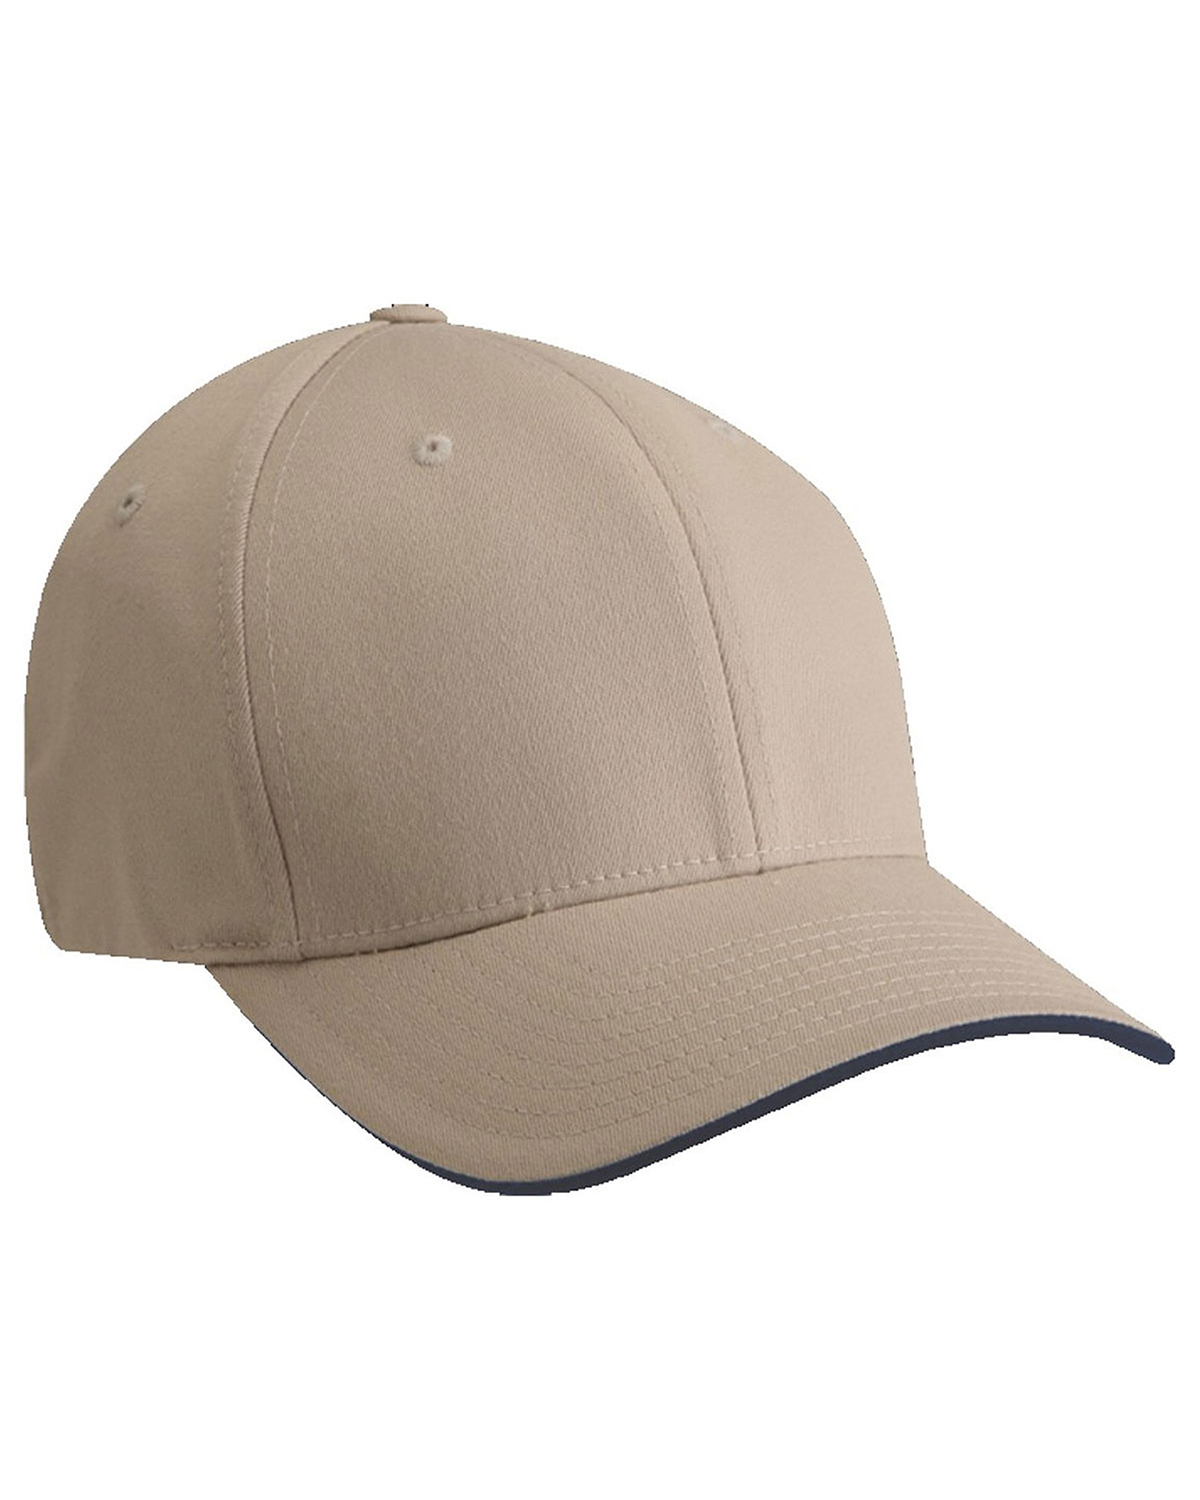 Yupoong 6077 Unisex Cool & Dry Sandwich Cap Khaki/Navy at GotApparel